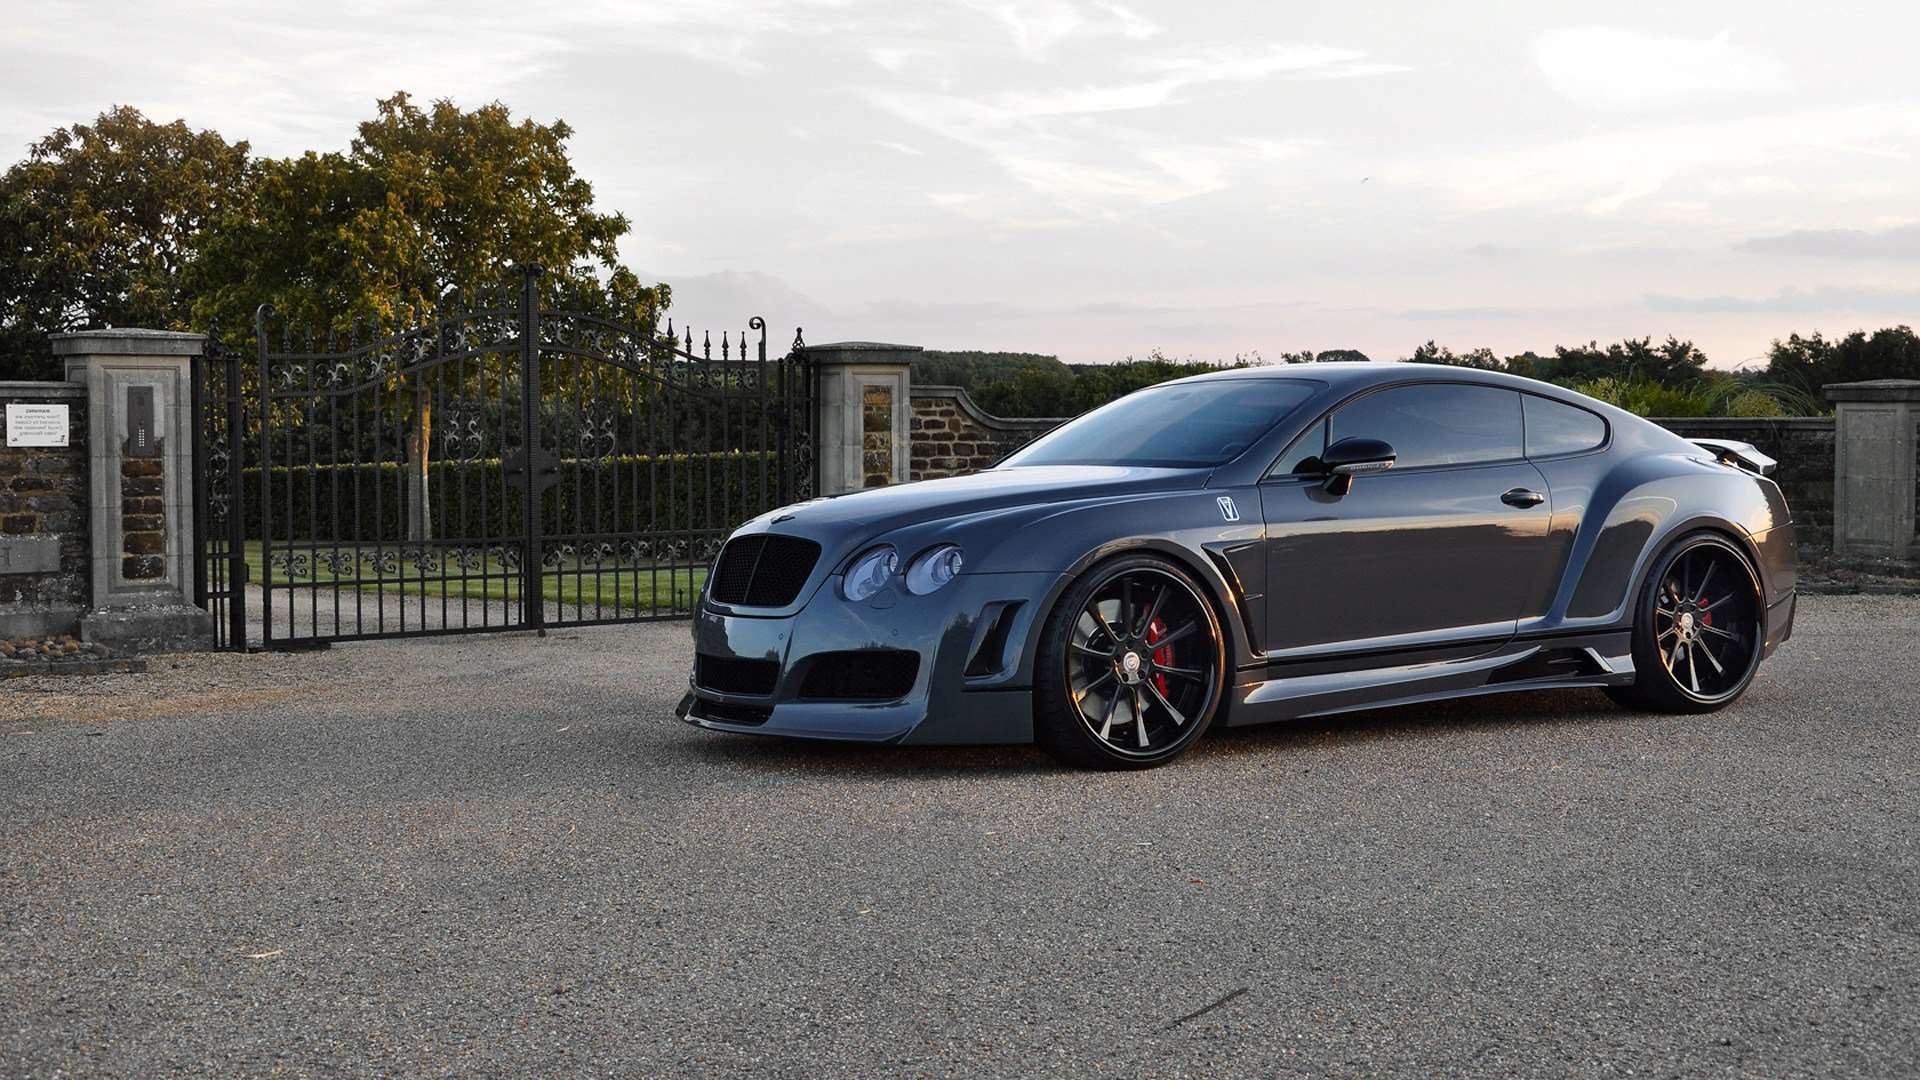 Latest Bentley Wallpapers Pictures Images Free Download